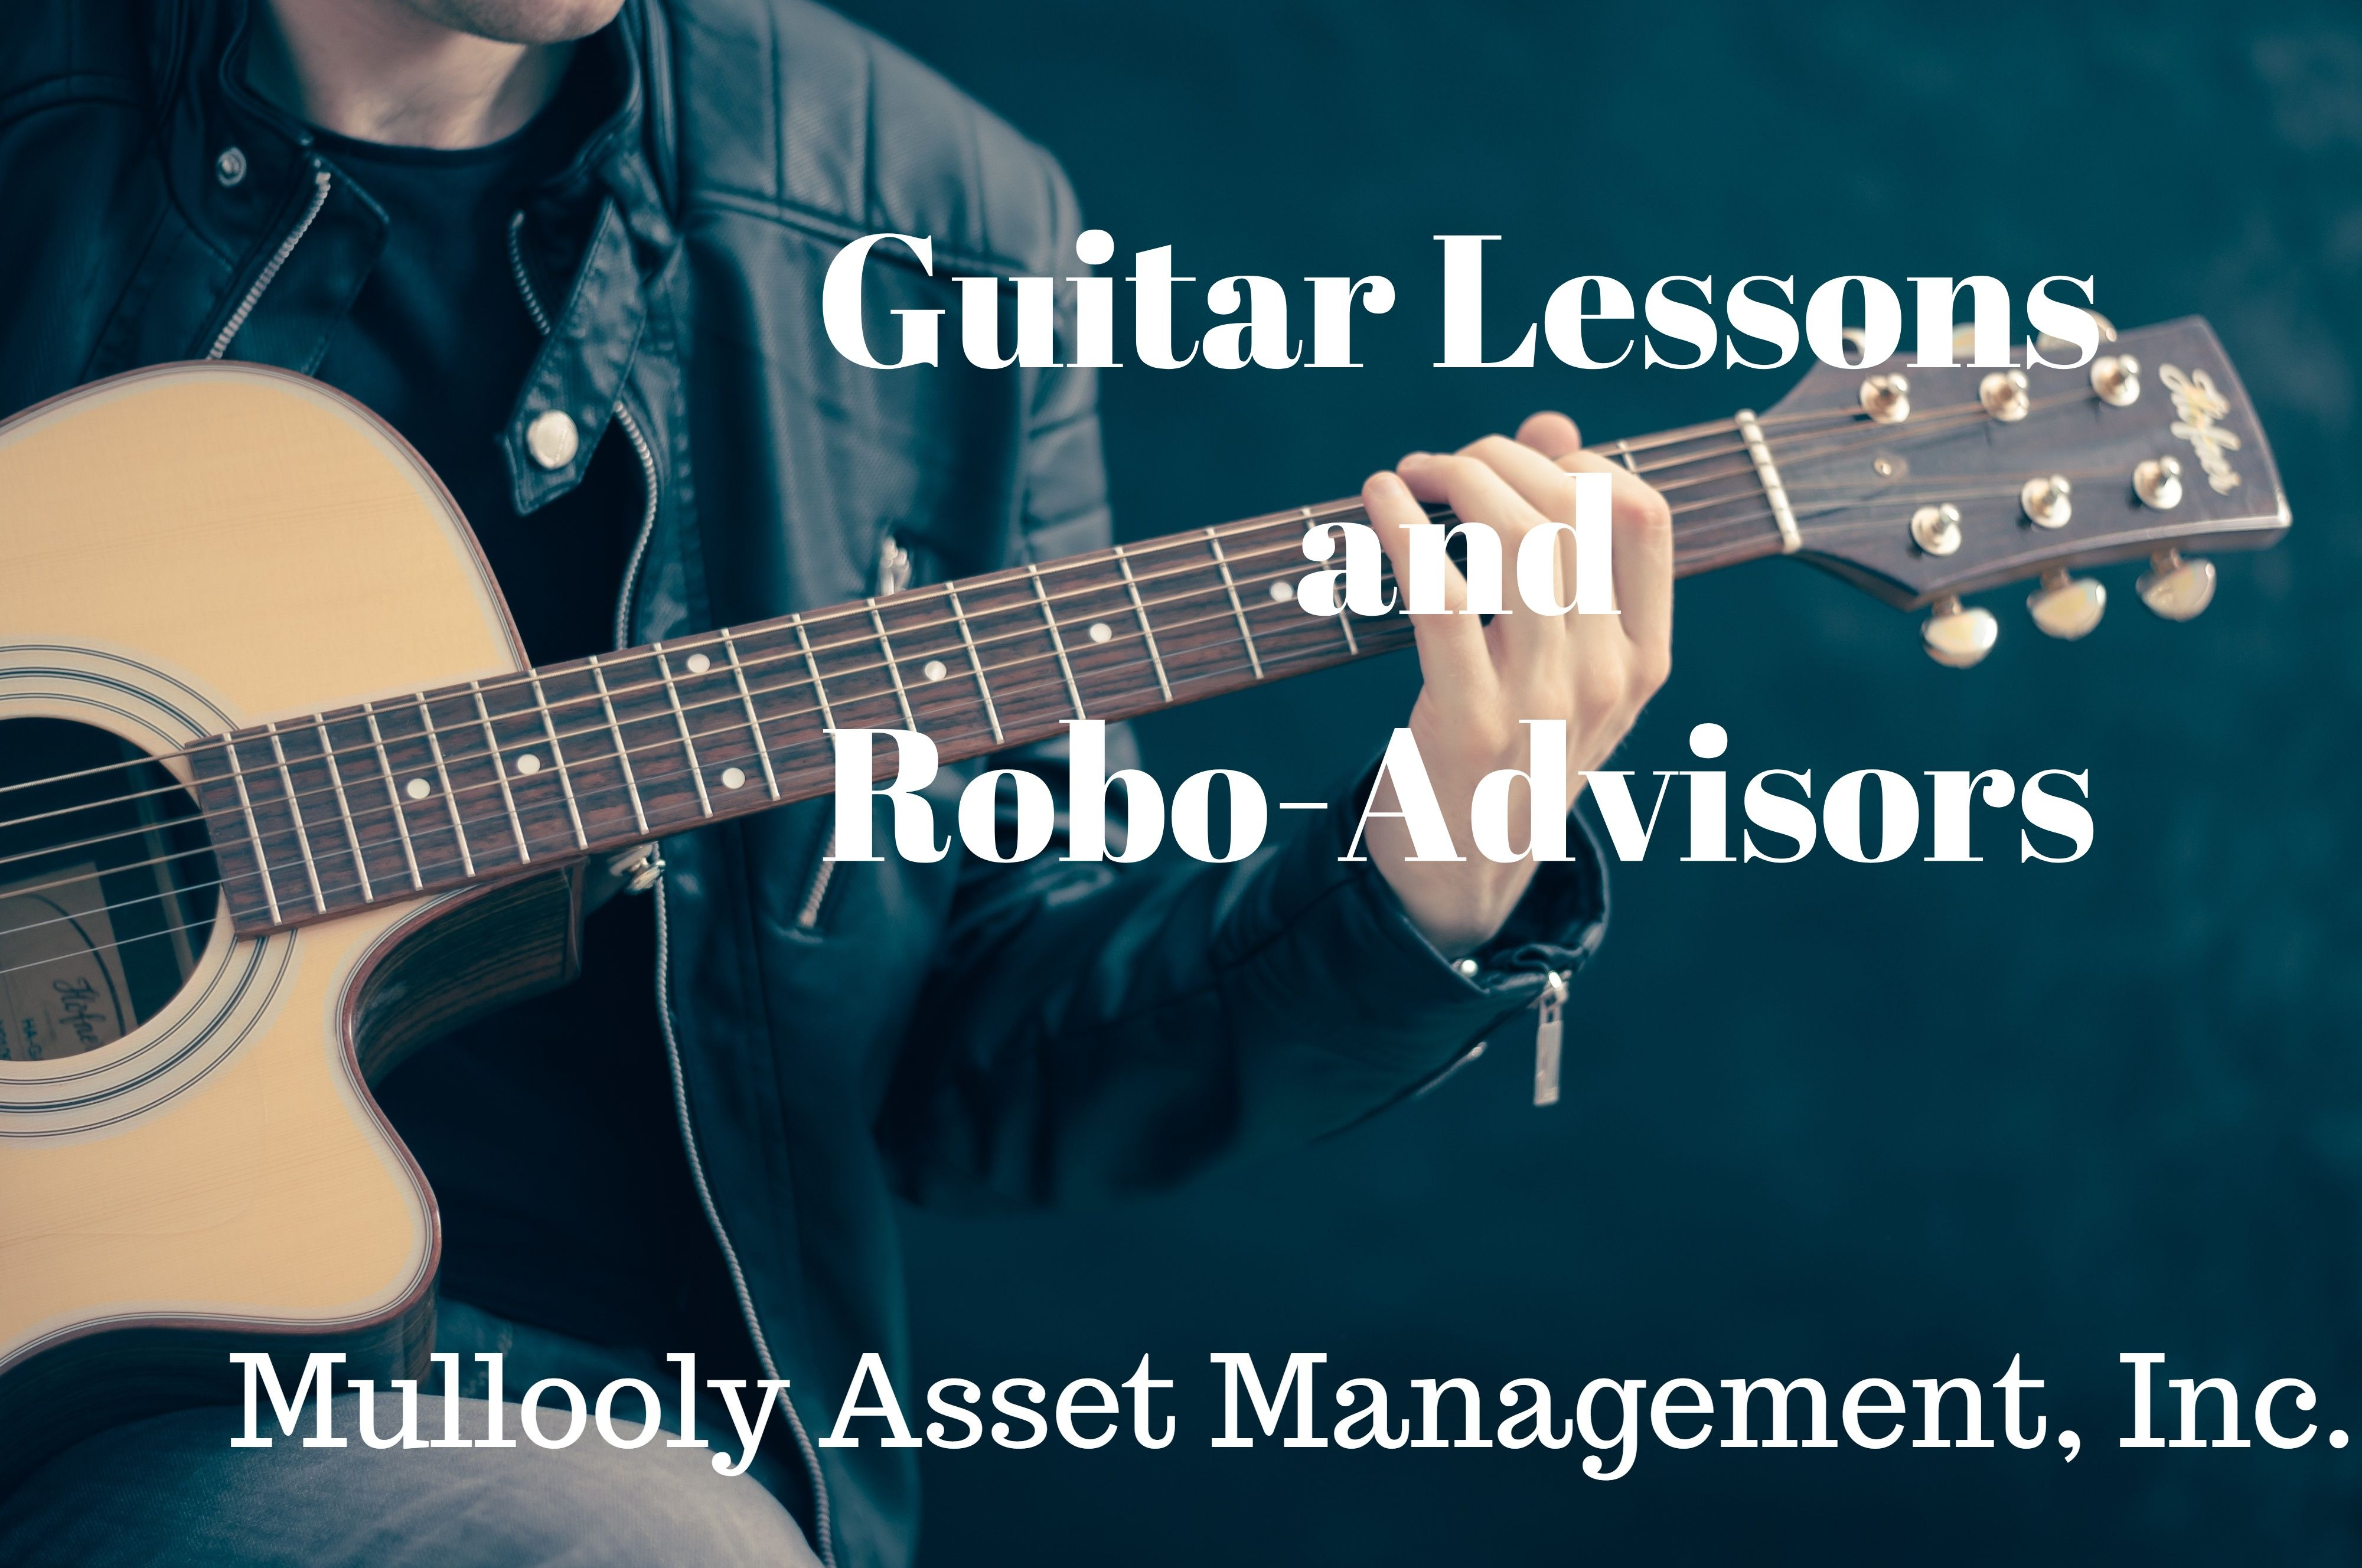 Guitar Lessons and Robo-Advisors